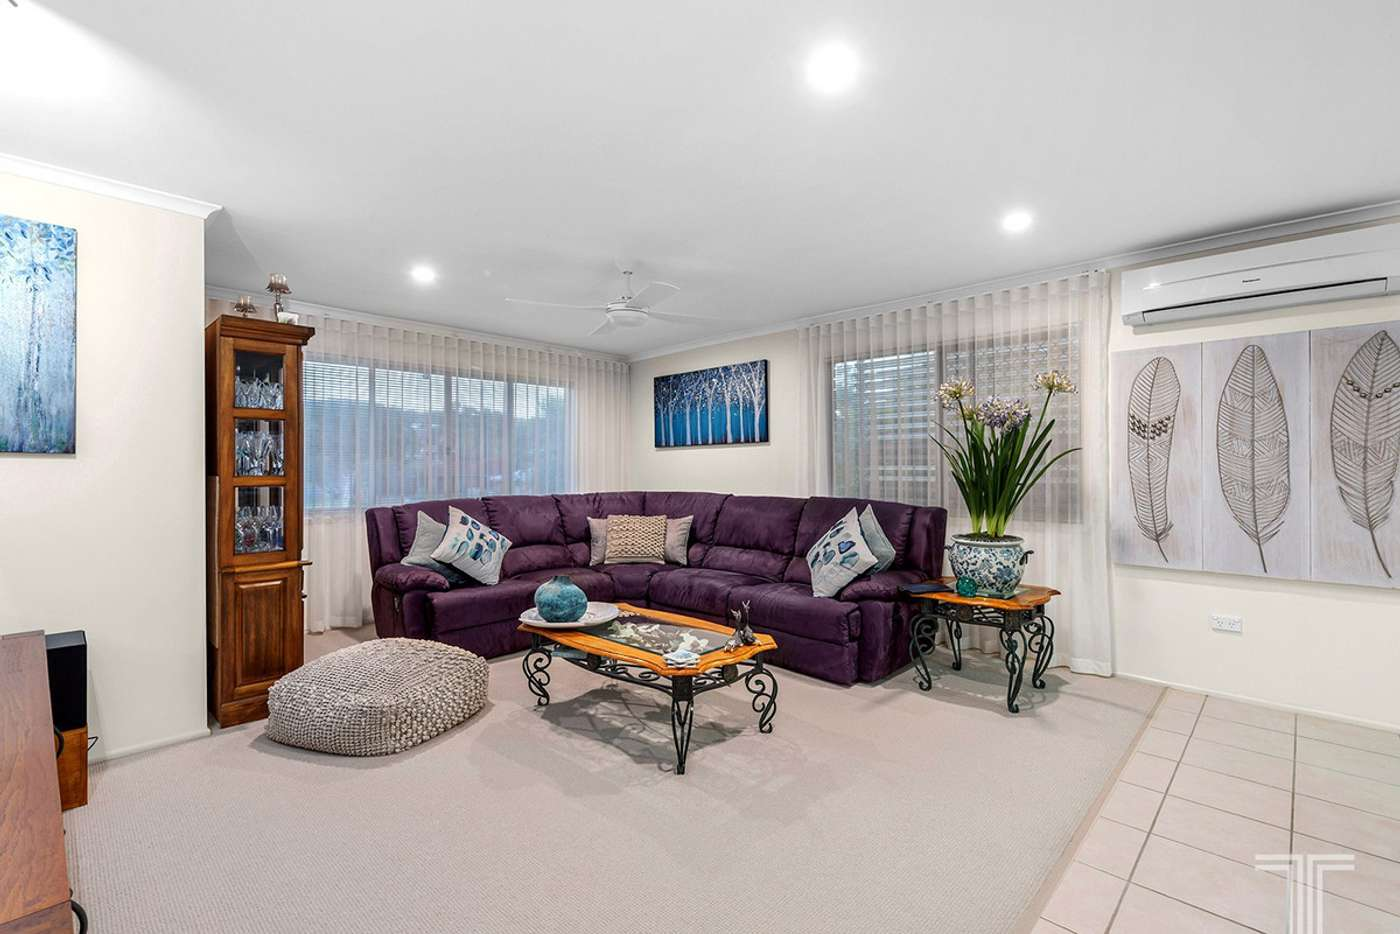 Fifth view of Homely house listing, 7 Maranoa Street, Carina Heights QLD 4152